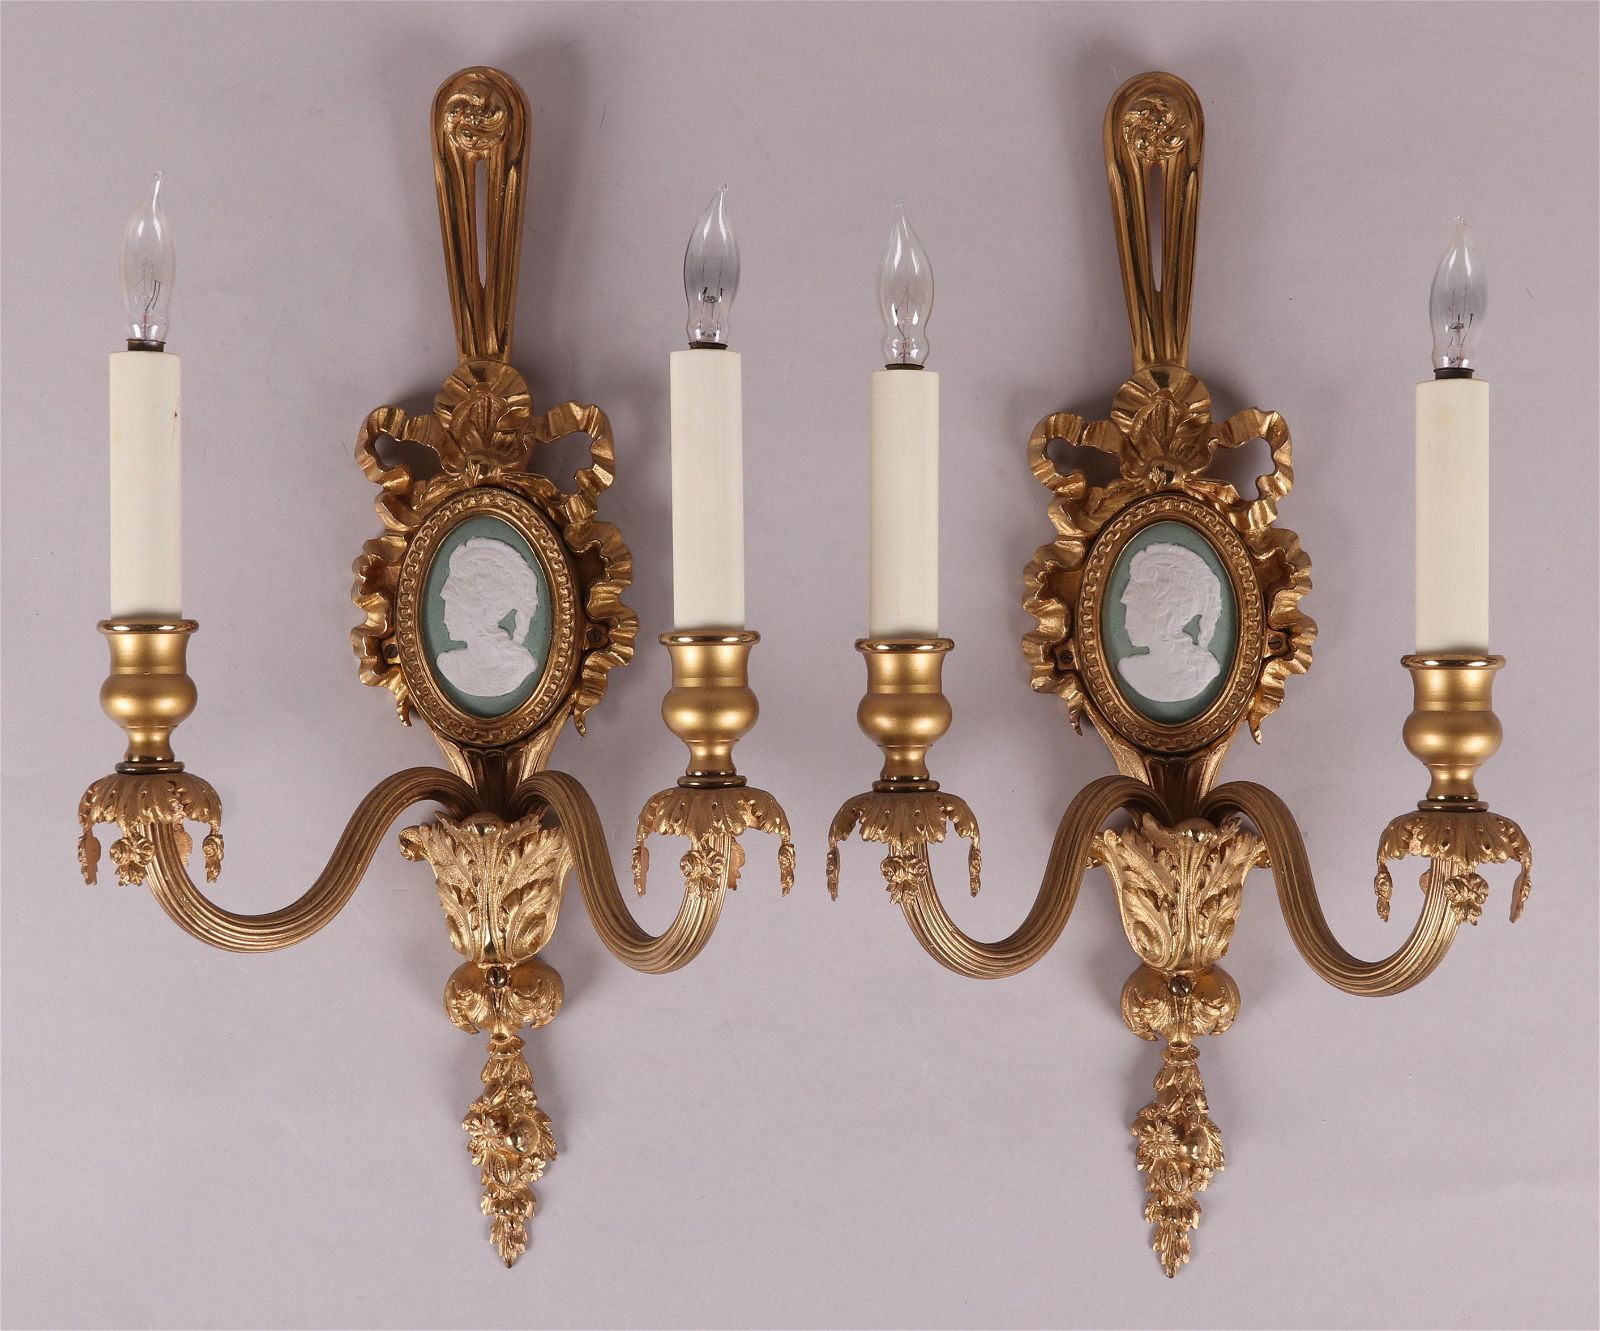 A Pair of Neoclassical Style Wall Sconces